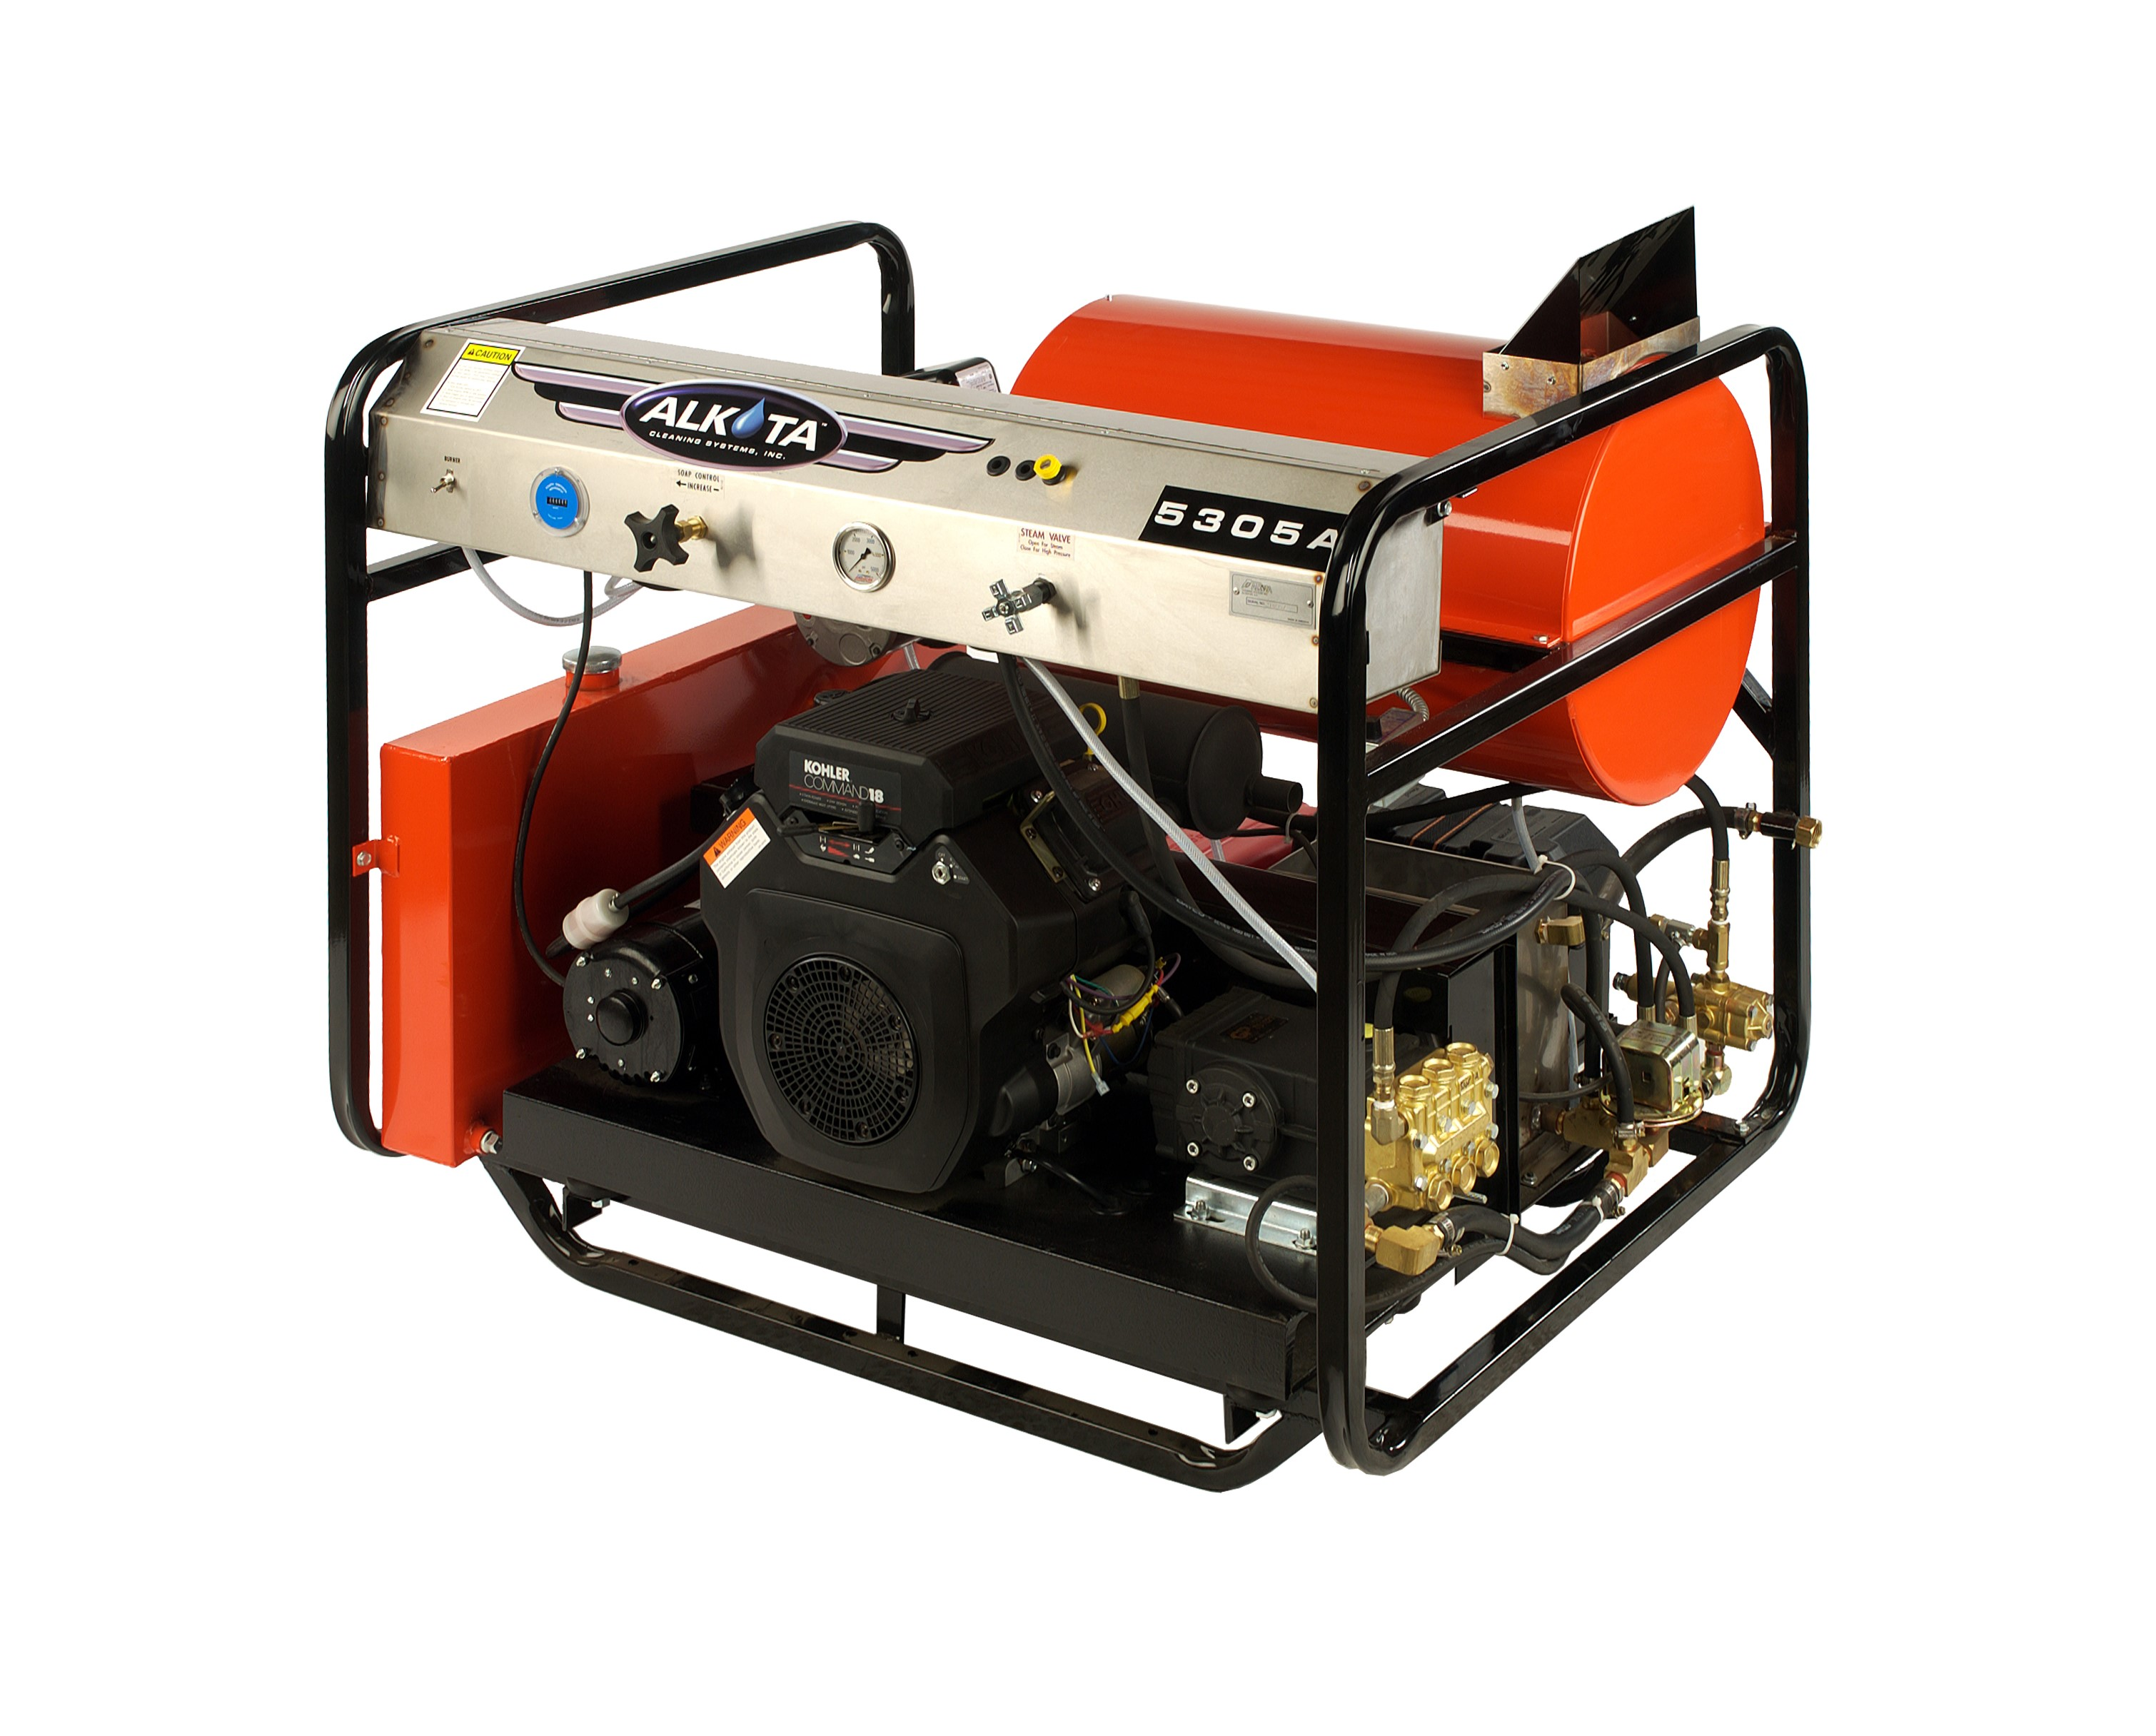 hight resolution of pressure washer hot water gas engine 5305a alkota alkota cleaning alkota wiring diagram